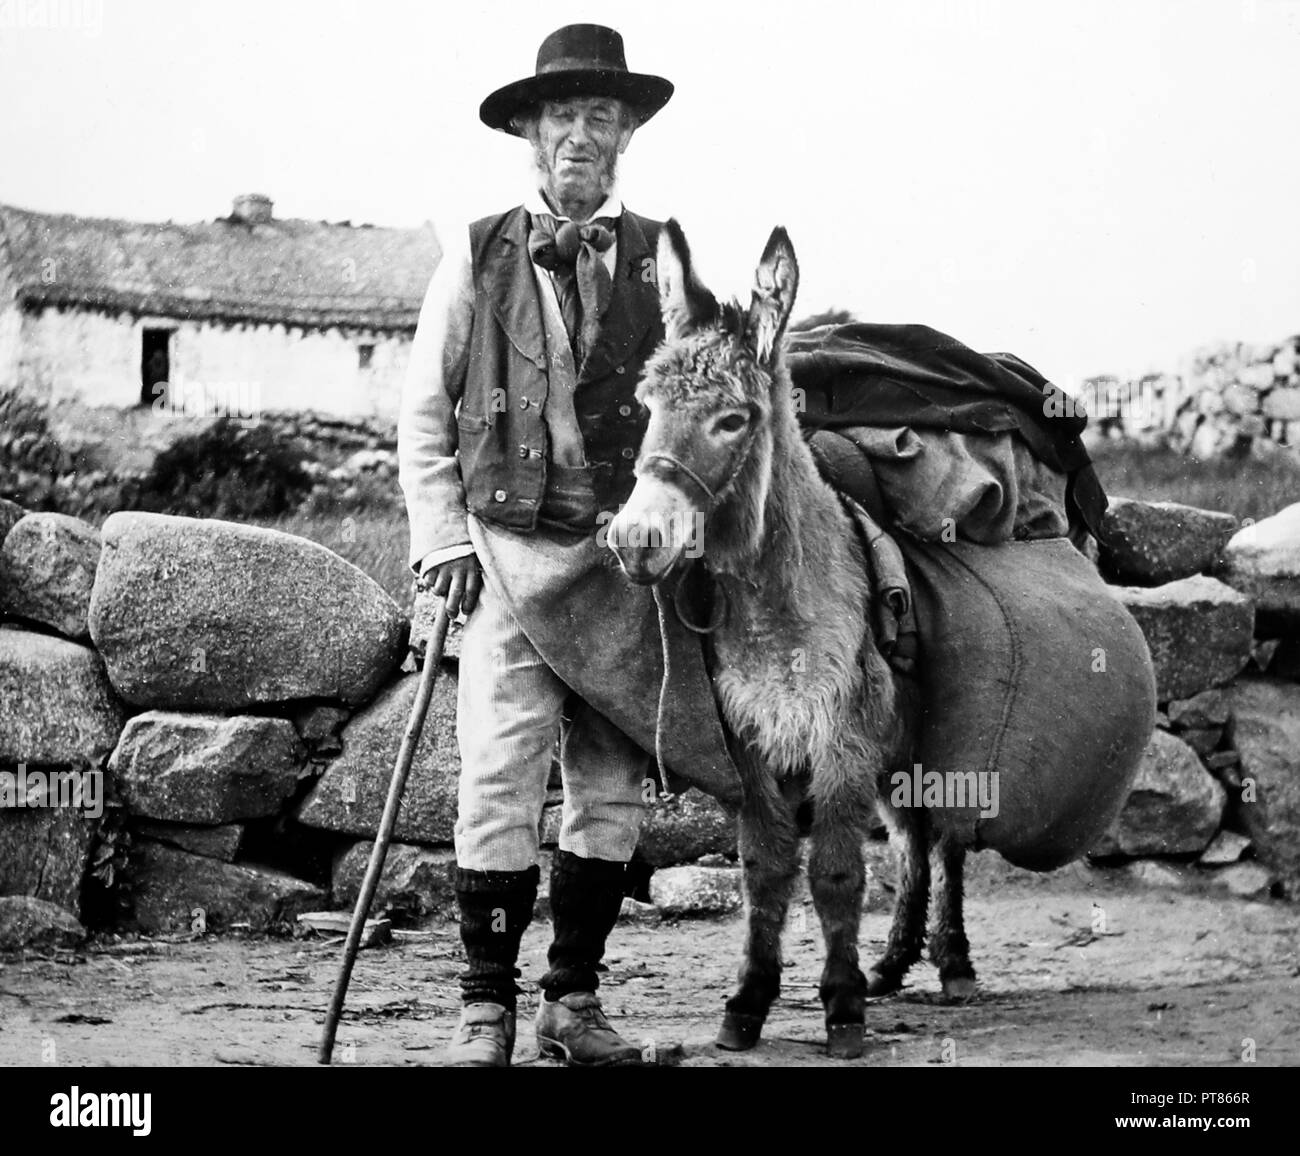 A travelling tinker, Rosmuck, Galway, West of Ireland, early 1900s - Stock Image